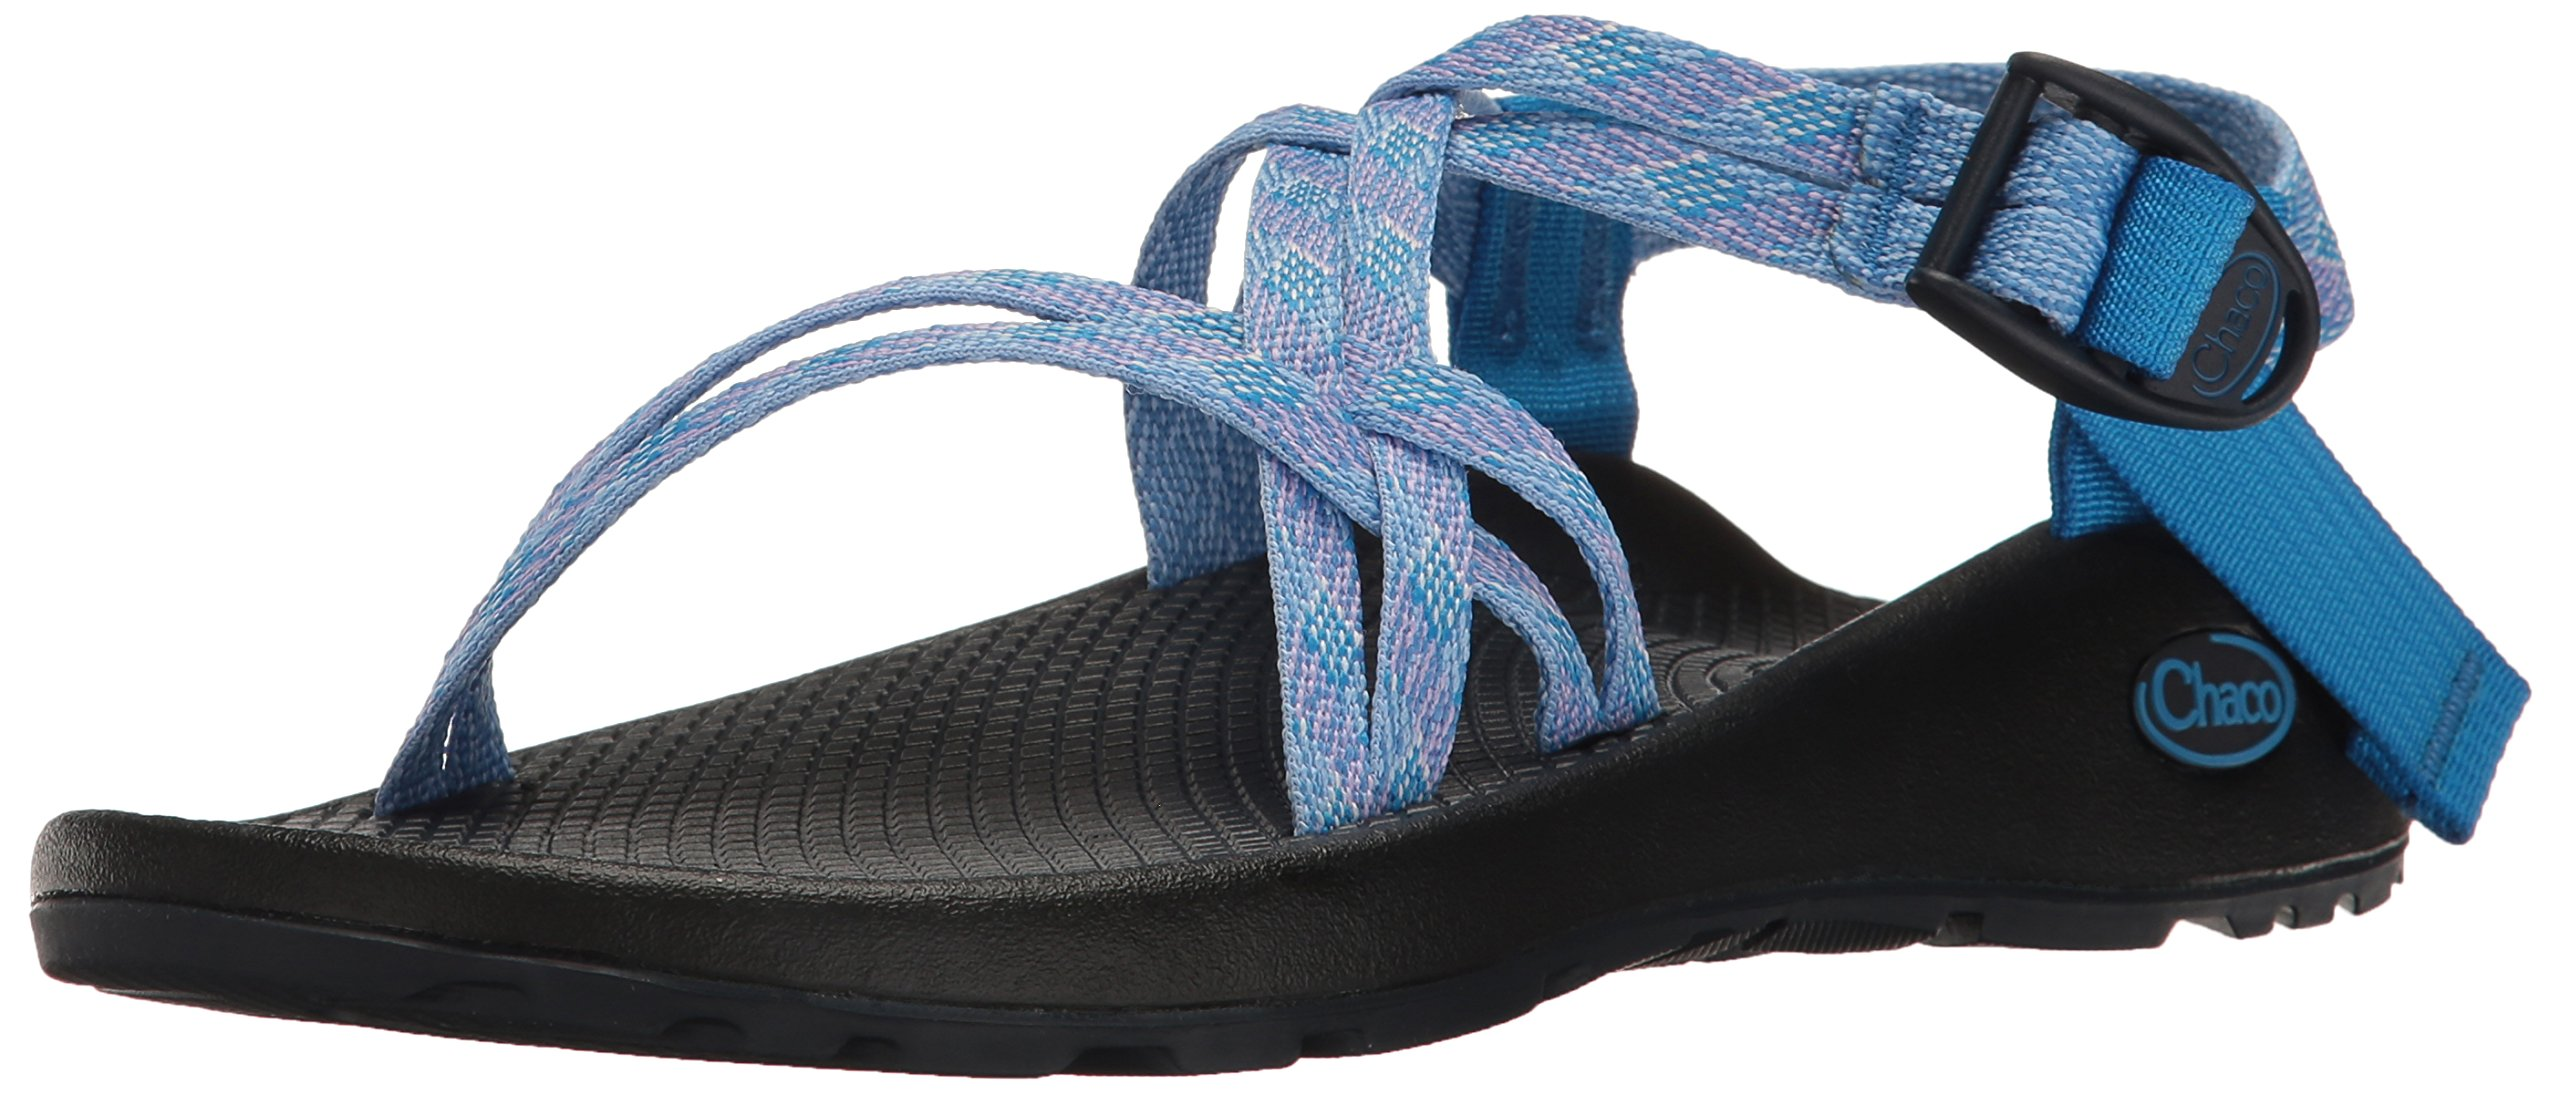 Chaco Women's ZX1 Classic Athletic Sandal, Braid Blue, 9 M US